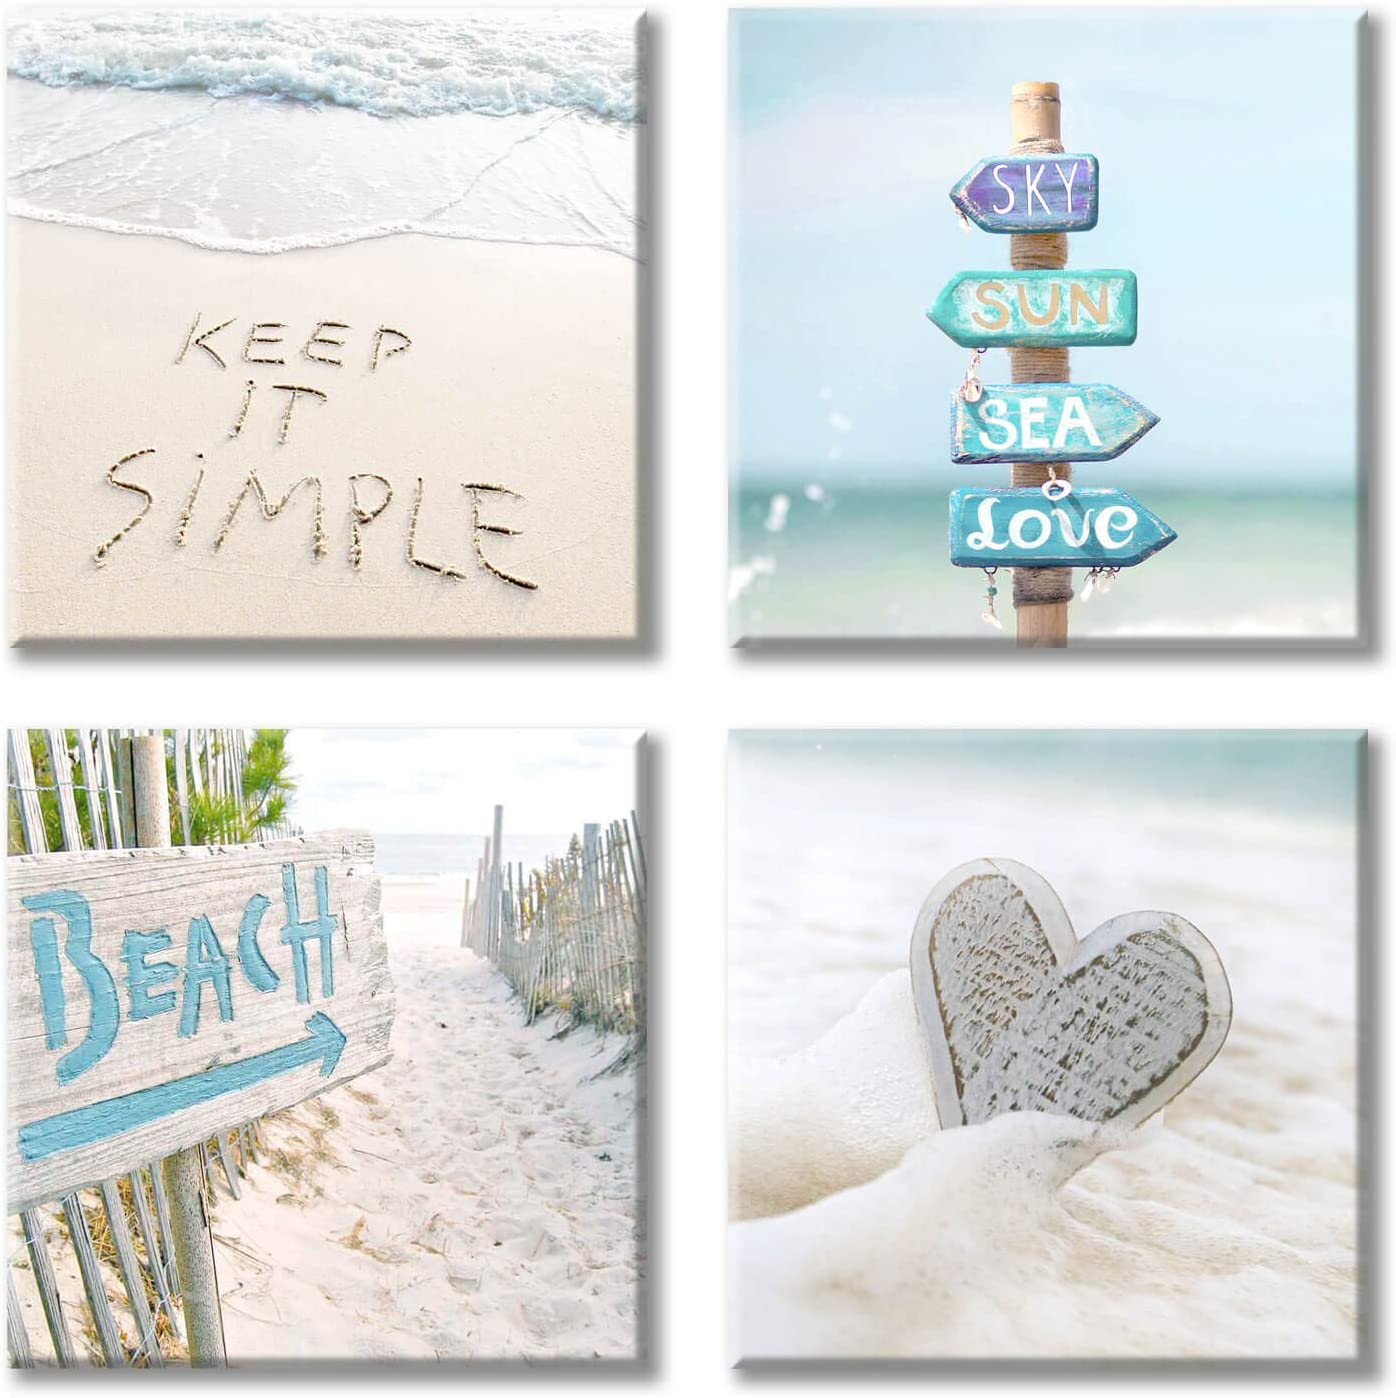 """Costal Canvas Wall Art Pictures: Beach Photographic Canvas Artwork for Room's Wall Decoration (12"""" x 12'' x 4 Panels)"""